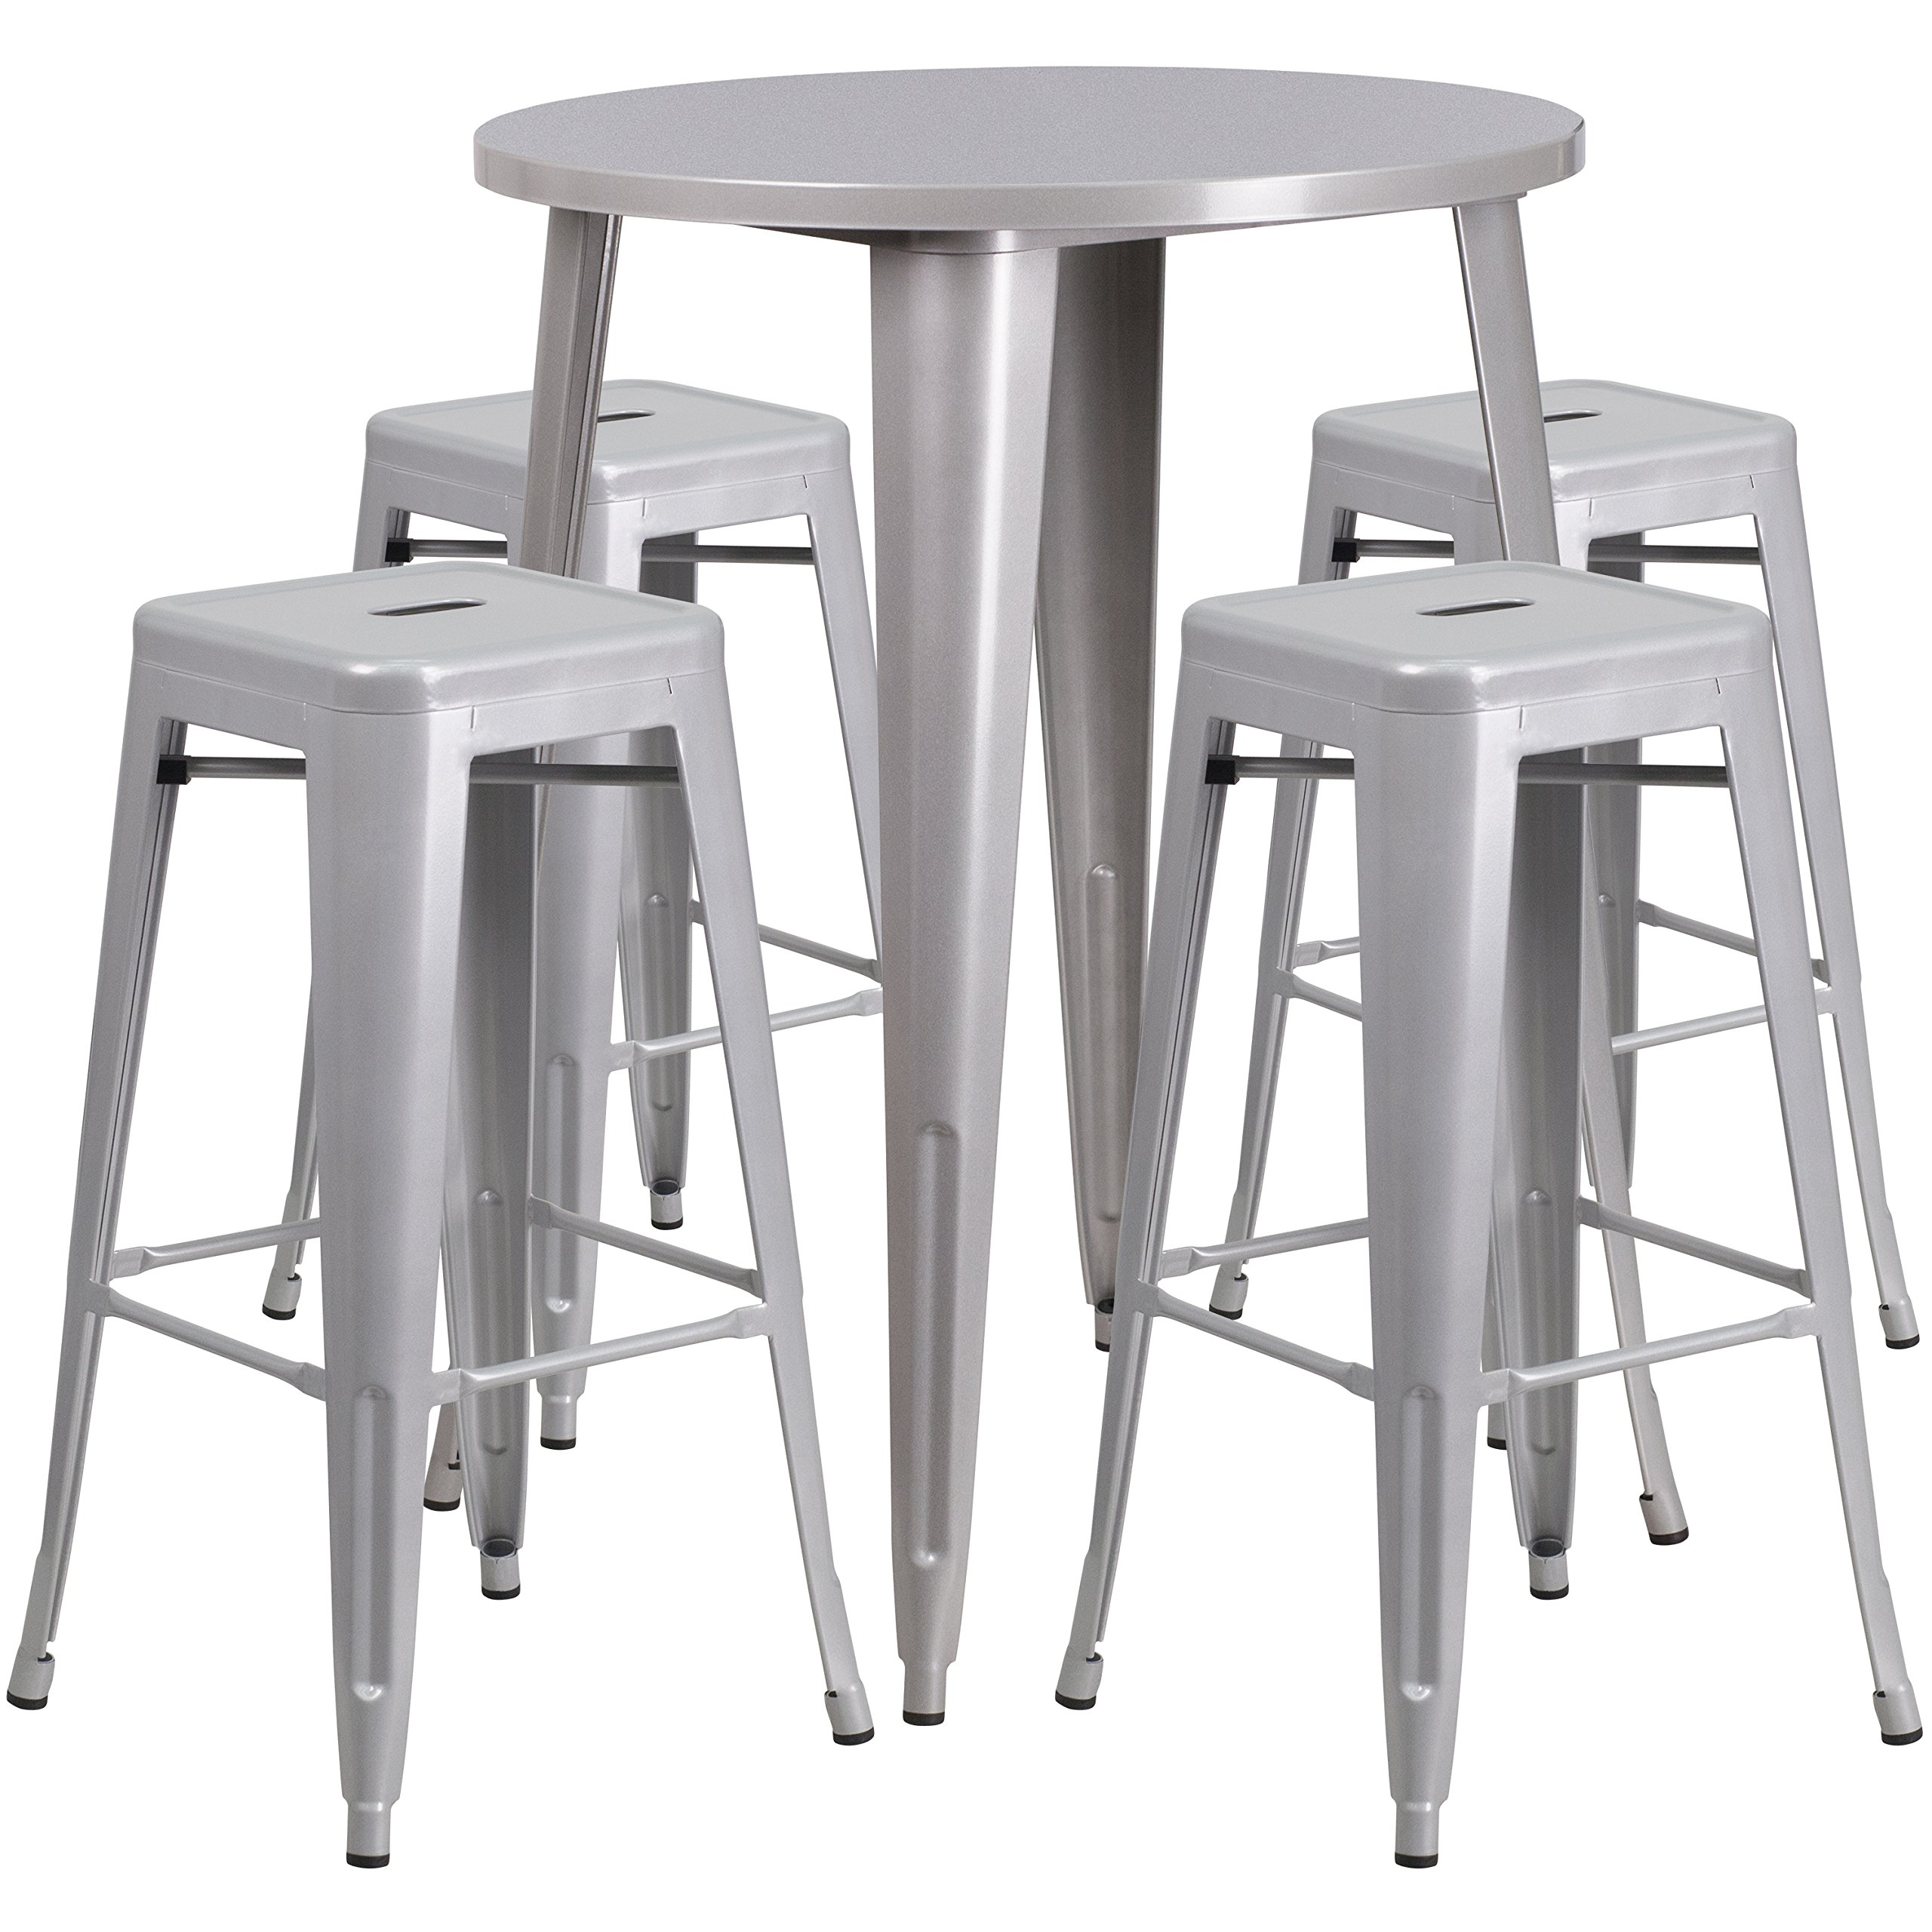 Flash Furniture 30'' Round Silver Metal Indoor-Outdoor Bar Table Set with 4 Square Seat Backless Stools by Flash Furniture (Image #1)